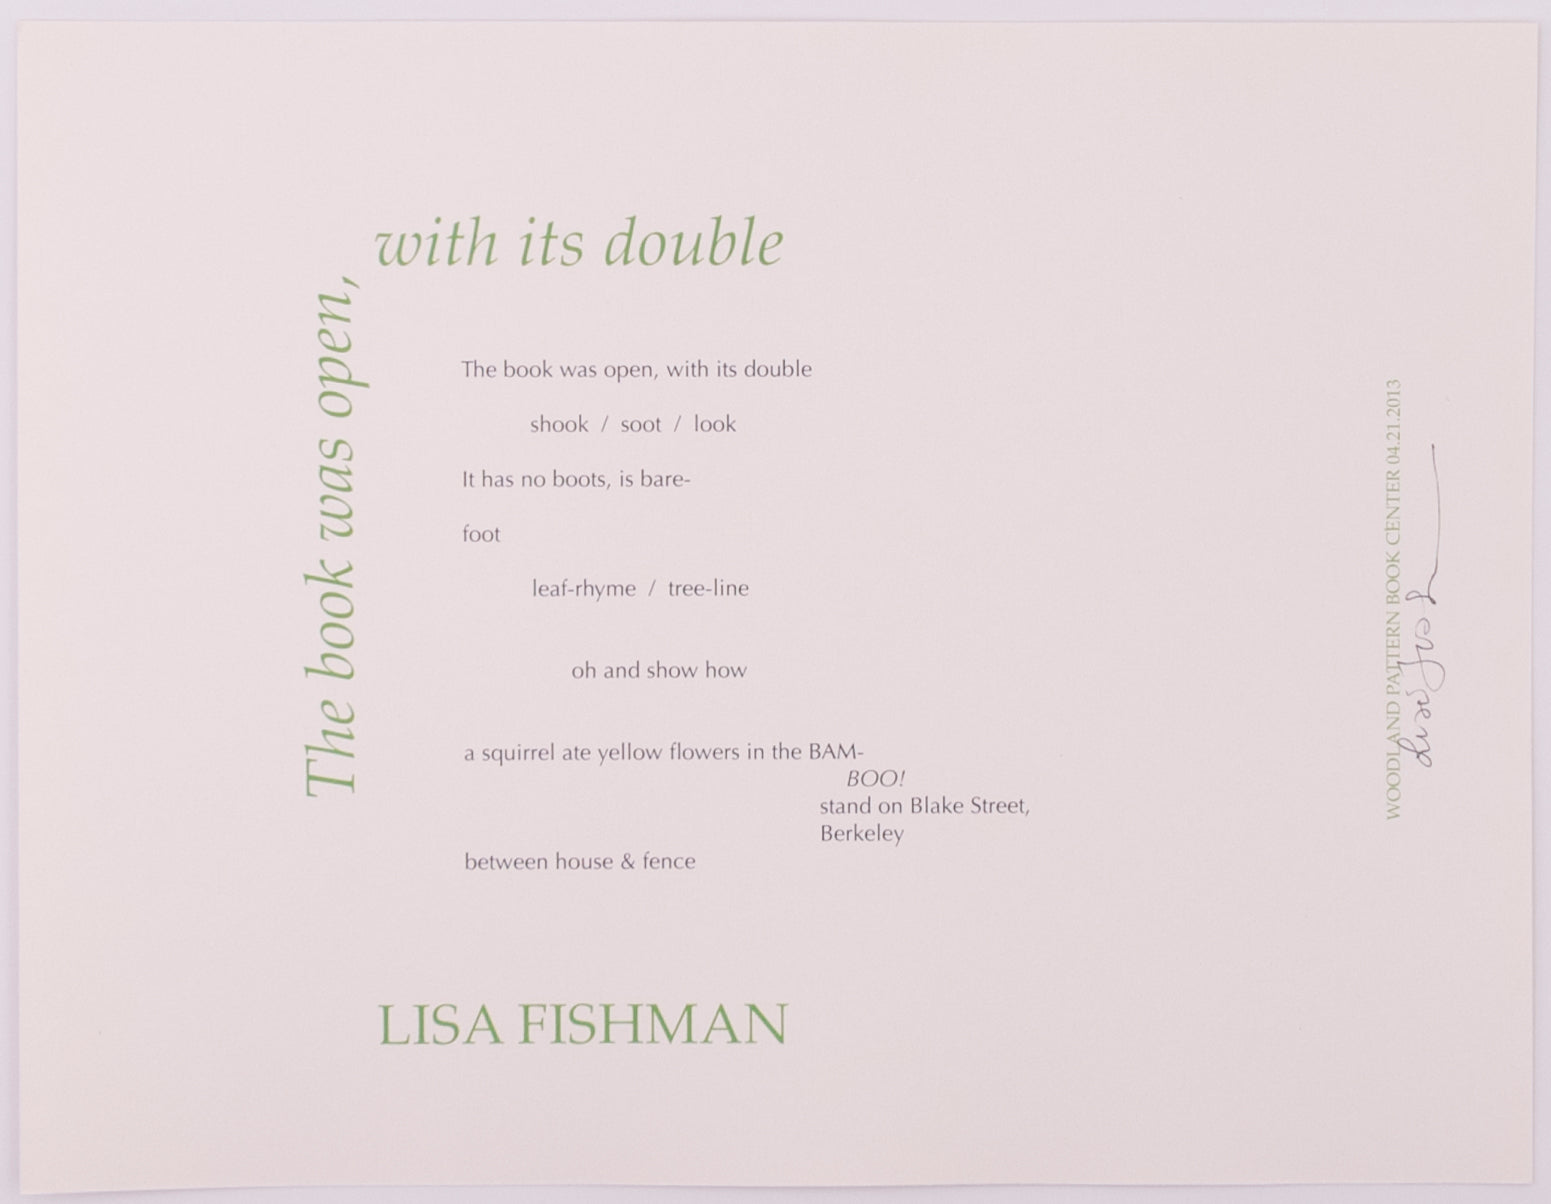 The Book Was Open, with Its Double by Lisa Fishman